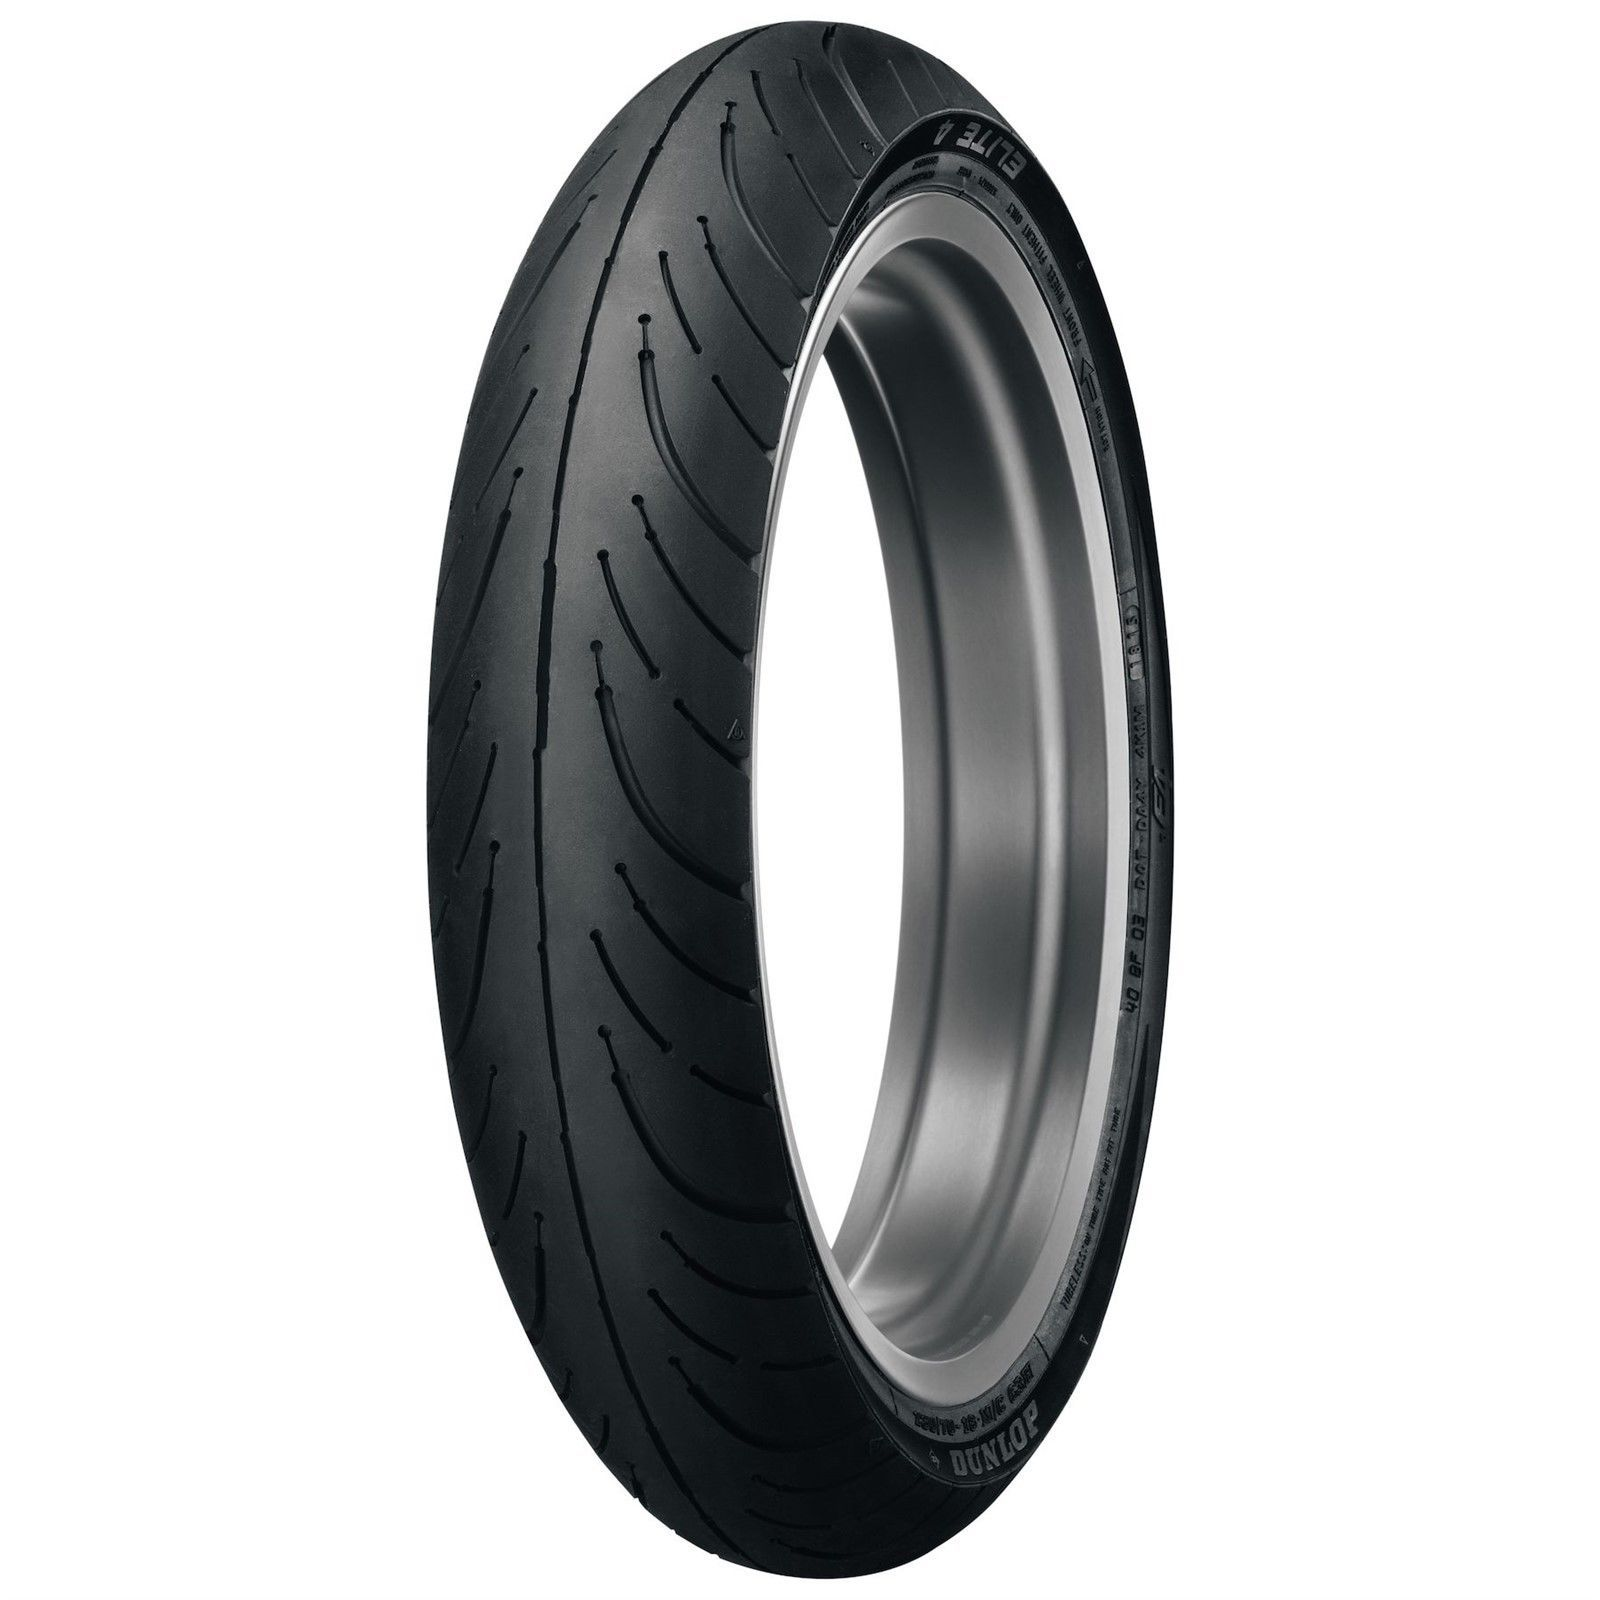 New Dunlop Elite 4 130/70R18 Radial Front Motorcycle Tire 63H High Mileage